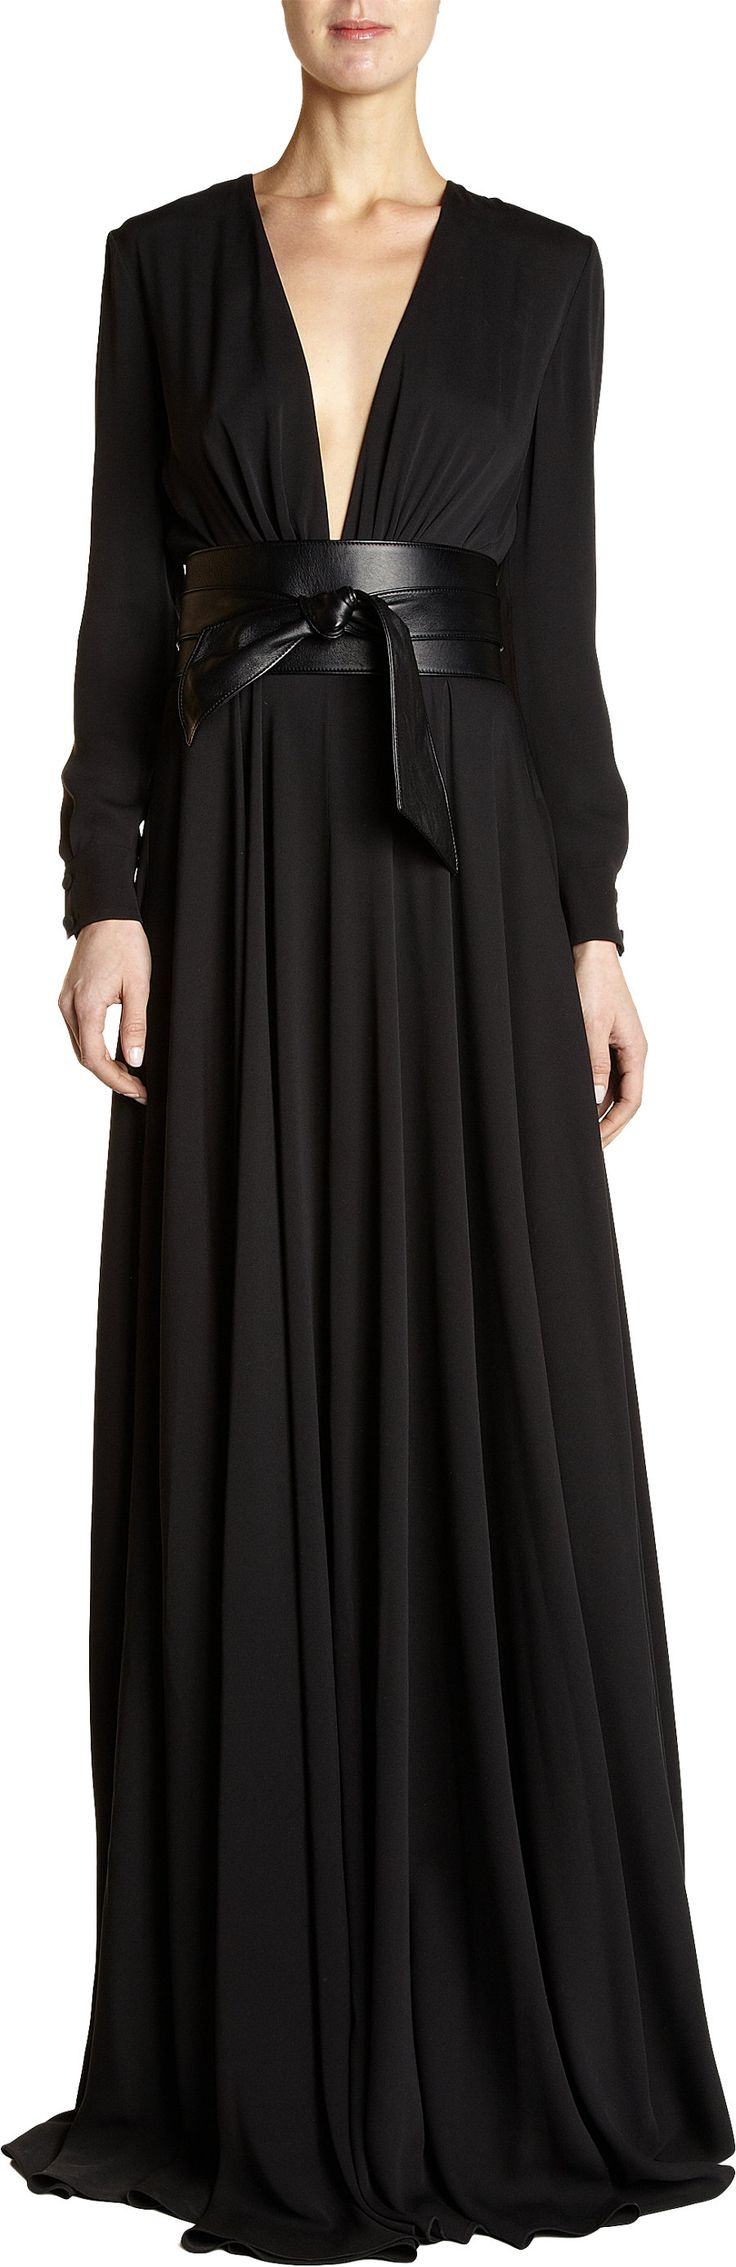 FALL 2013: SAINT LAURENT Belted Gown